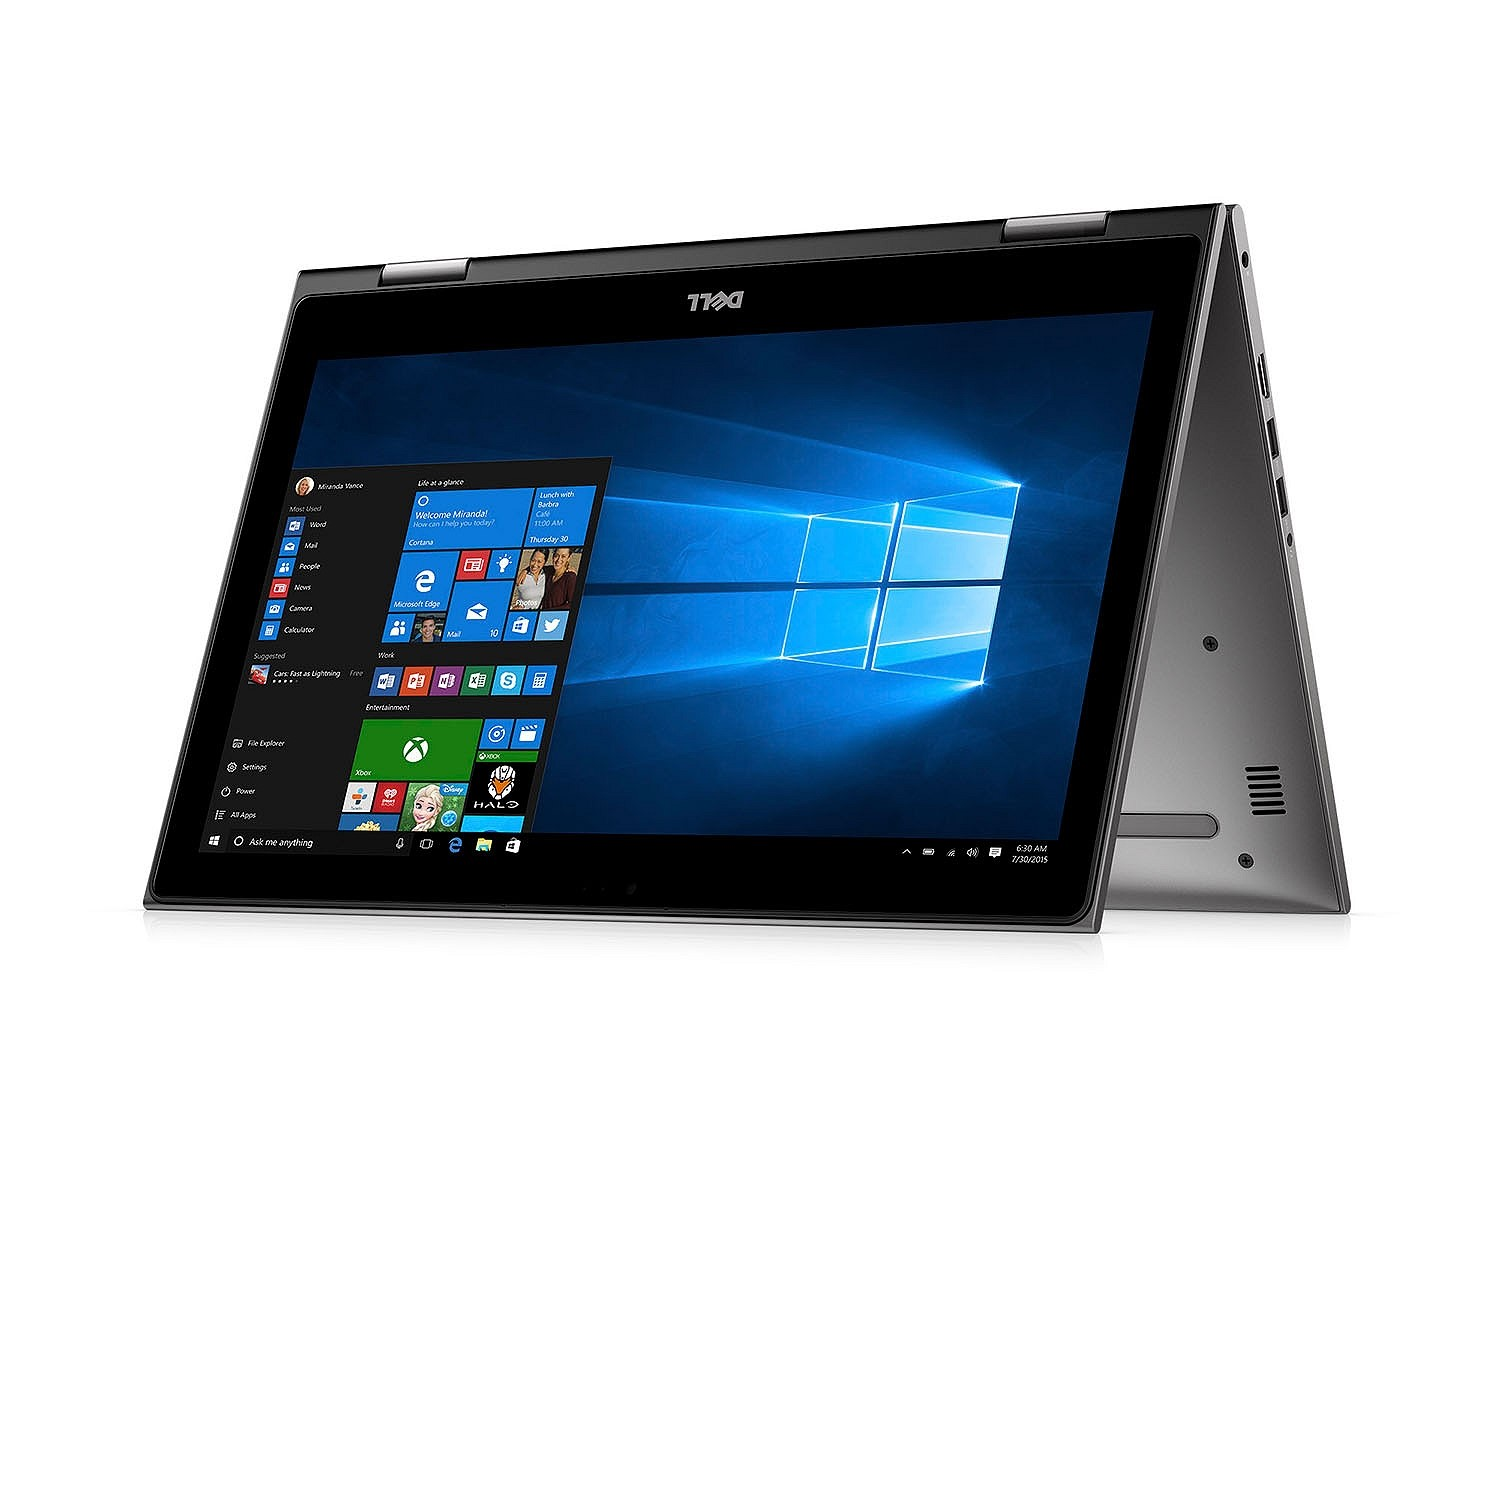 Dell Inspiron 15 5000 2-in-1, i5578-3052GRY, 15.6'' FHD Touch (1920x1080), IntelR Core i3-7100U, 8GB 2400mhz DDR4, 1TB 5400 rpm HDD, Intel HD Graphics 620